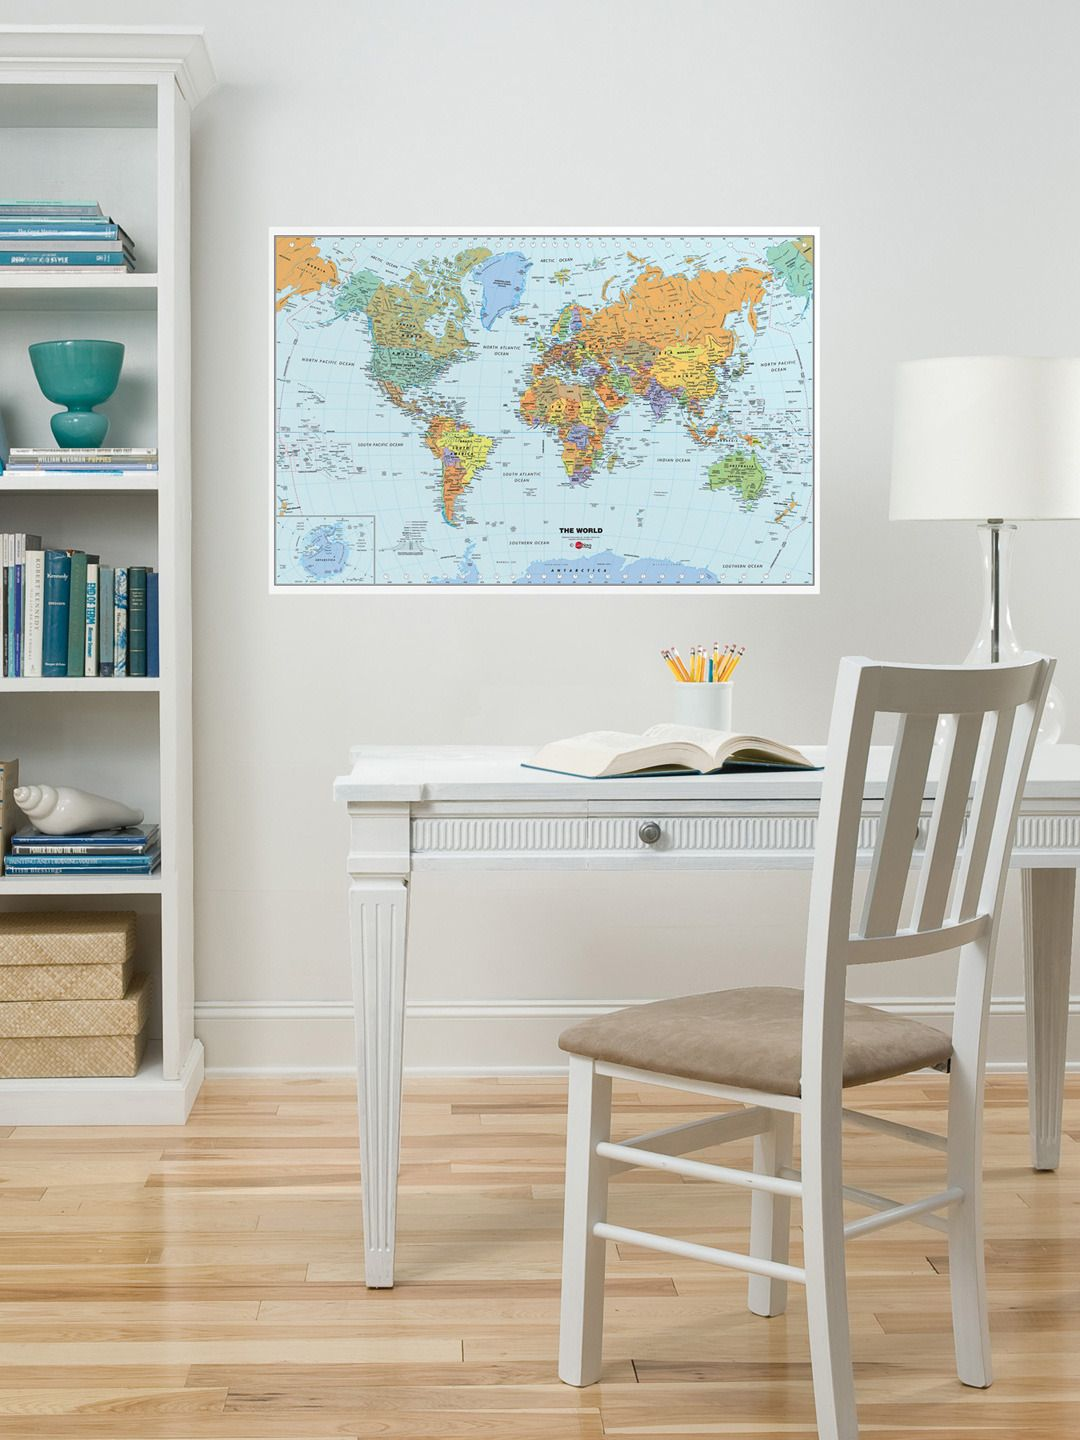 465f579ccd World map wall decal   maps   World map wall decal, World map decal ...